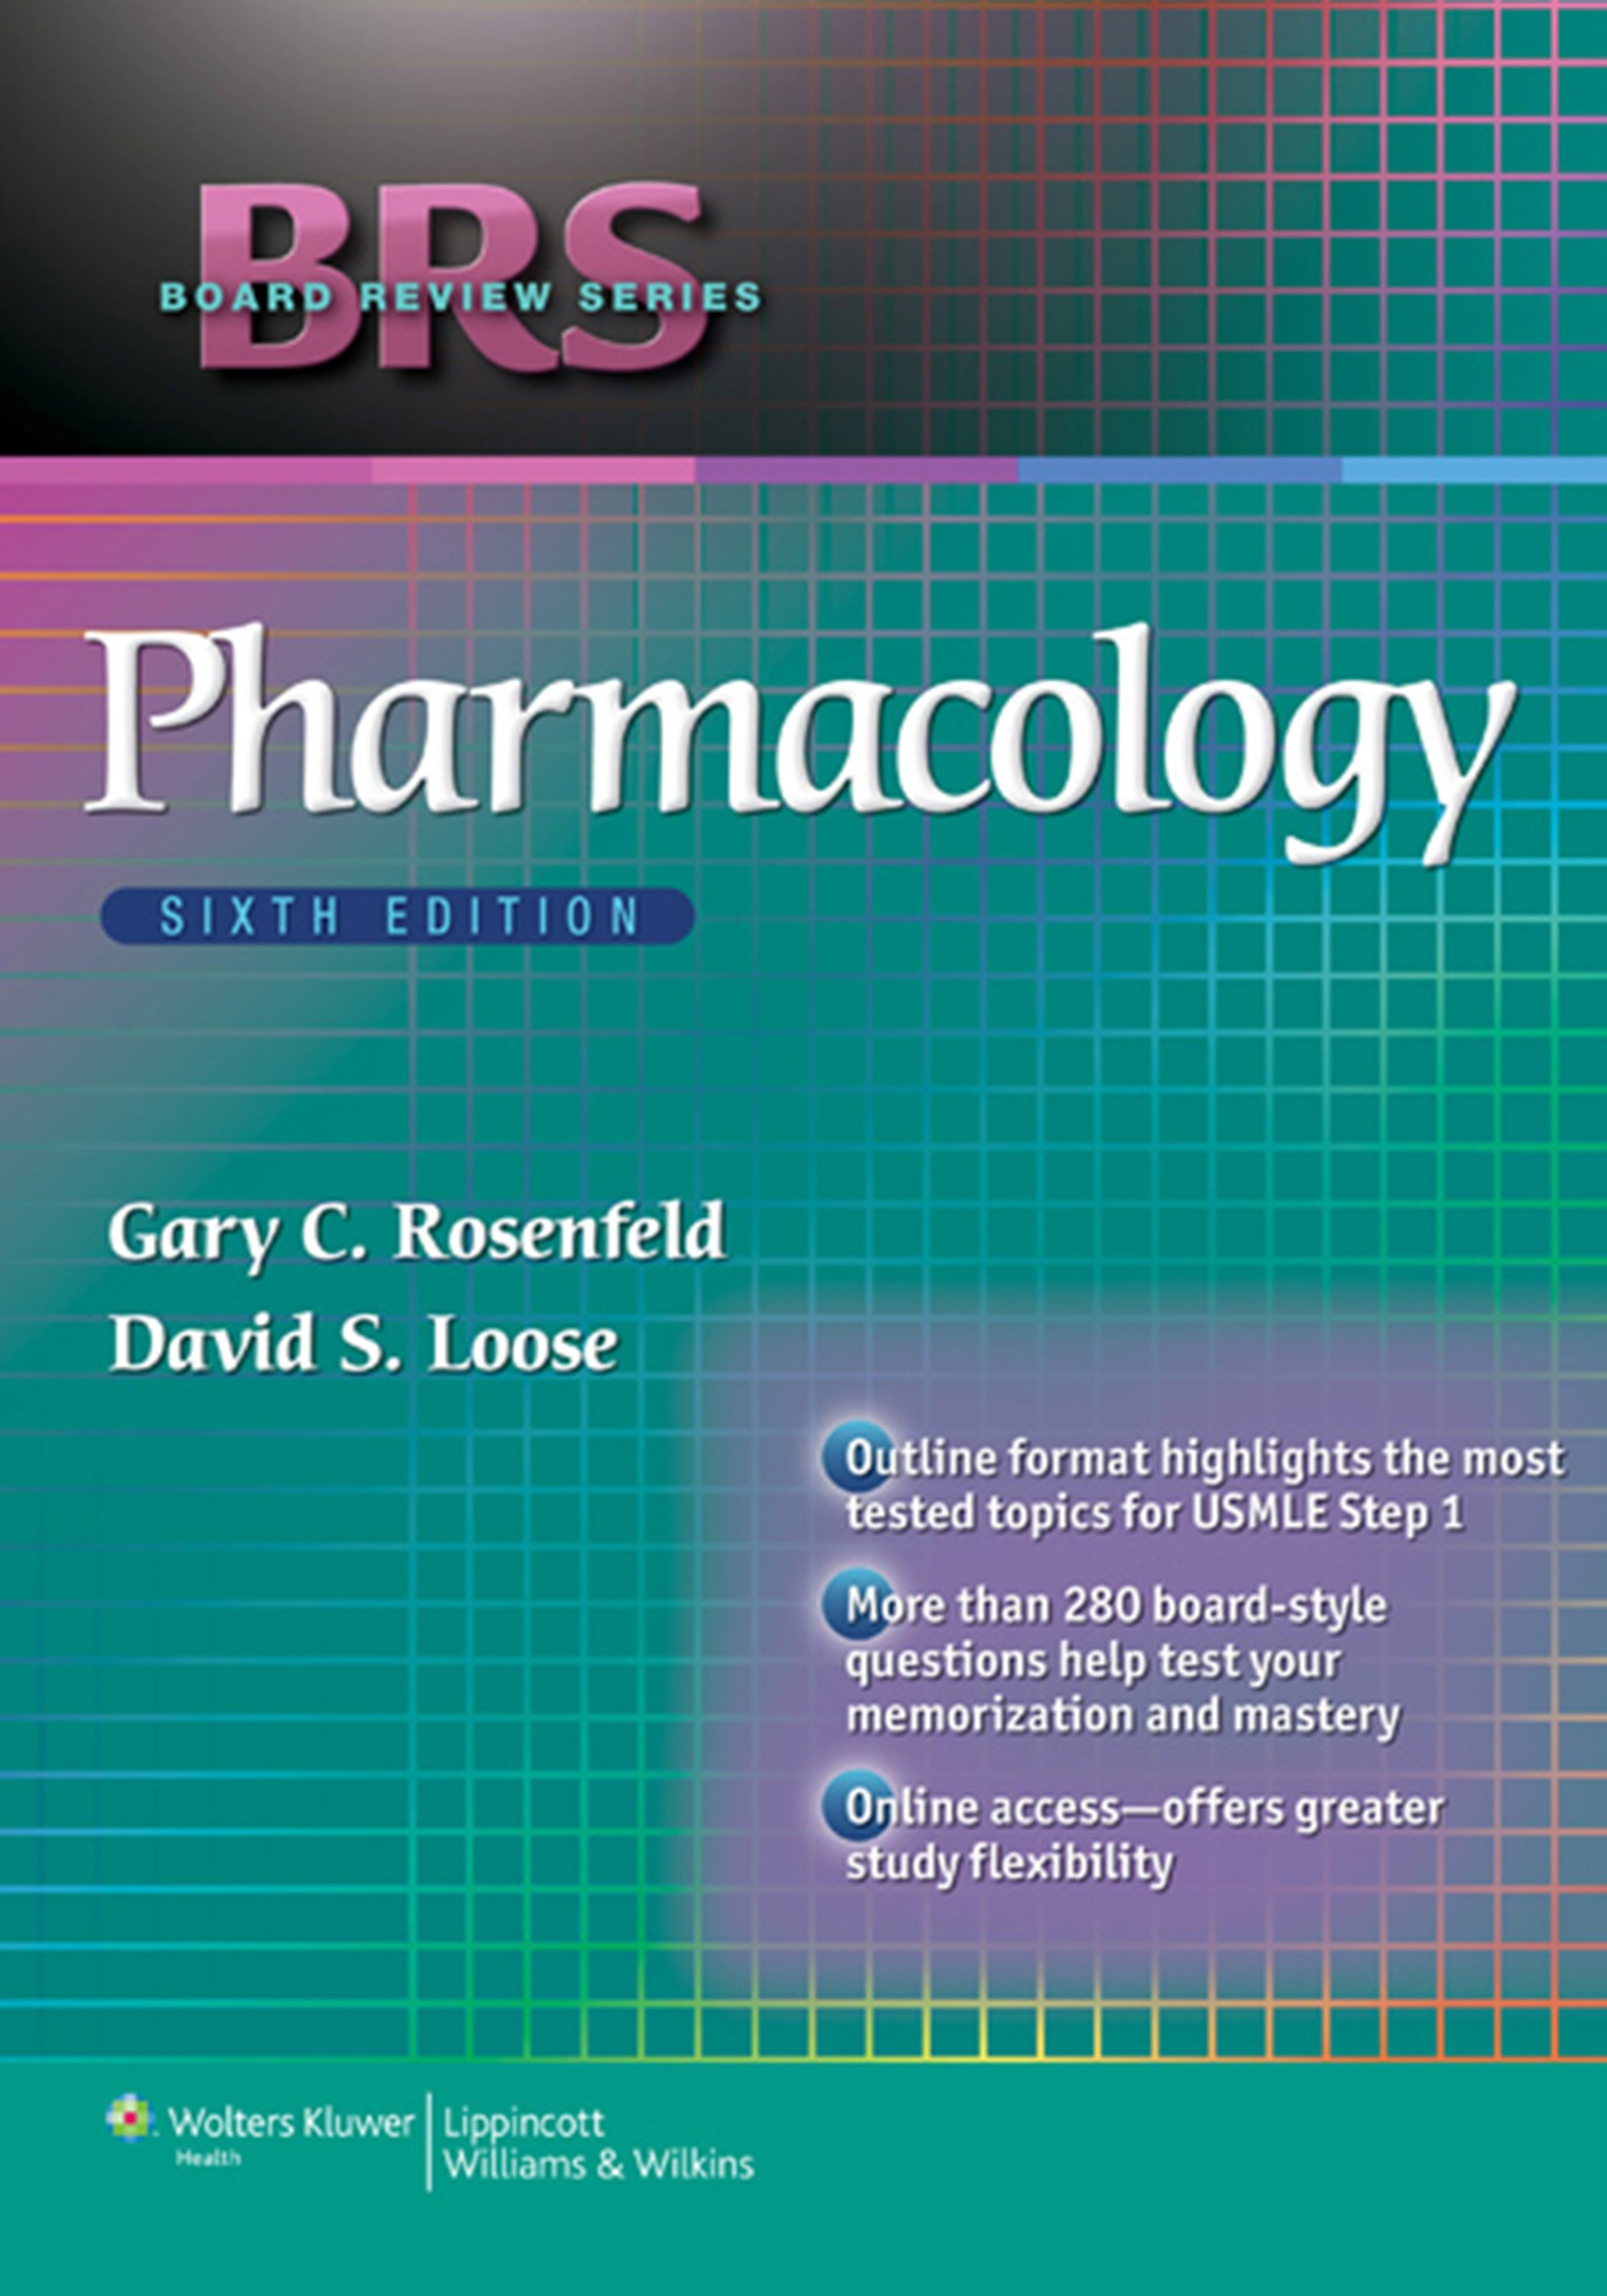 Brs Pharmacology 5th Edition Pdf